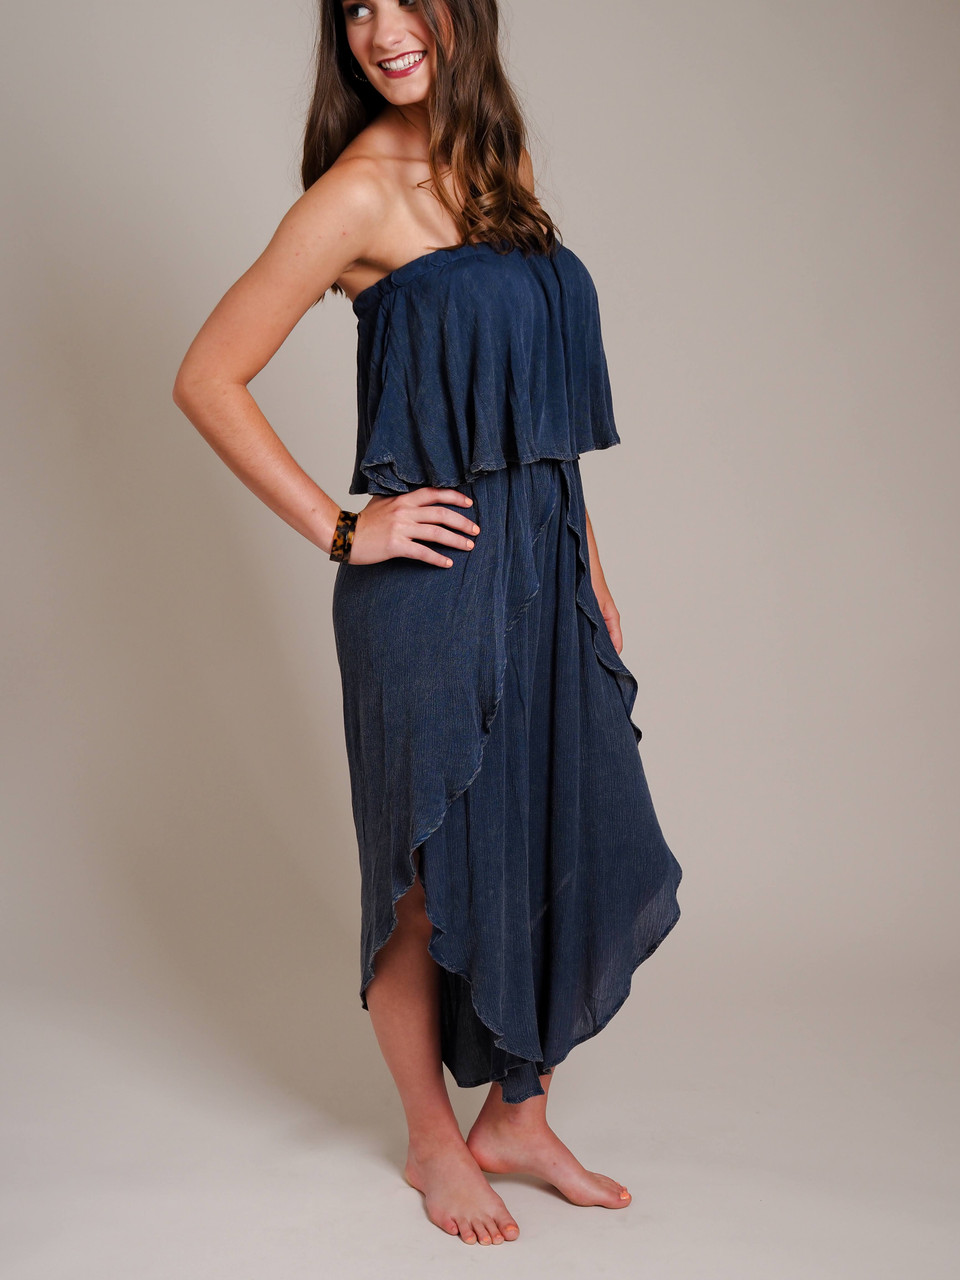 Strapless Jumpsuit with Ruffle Overlay